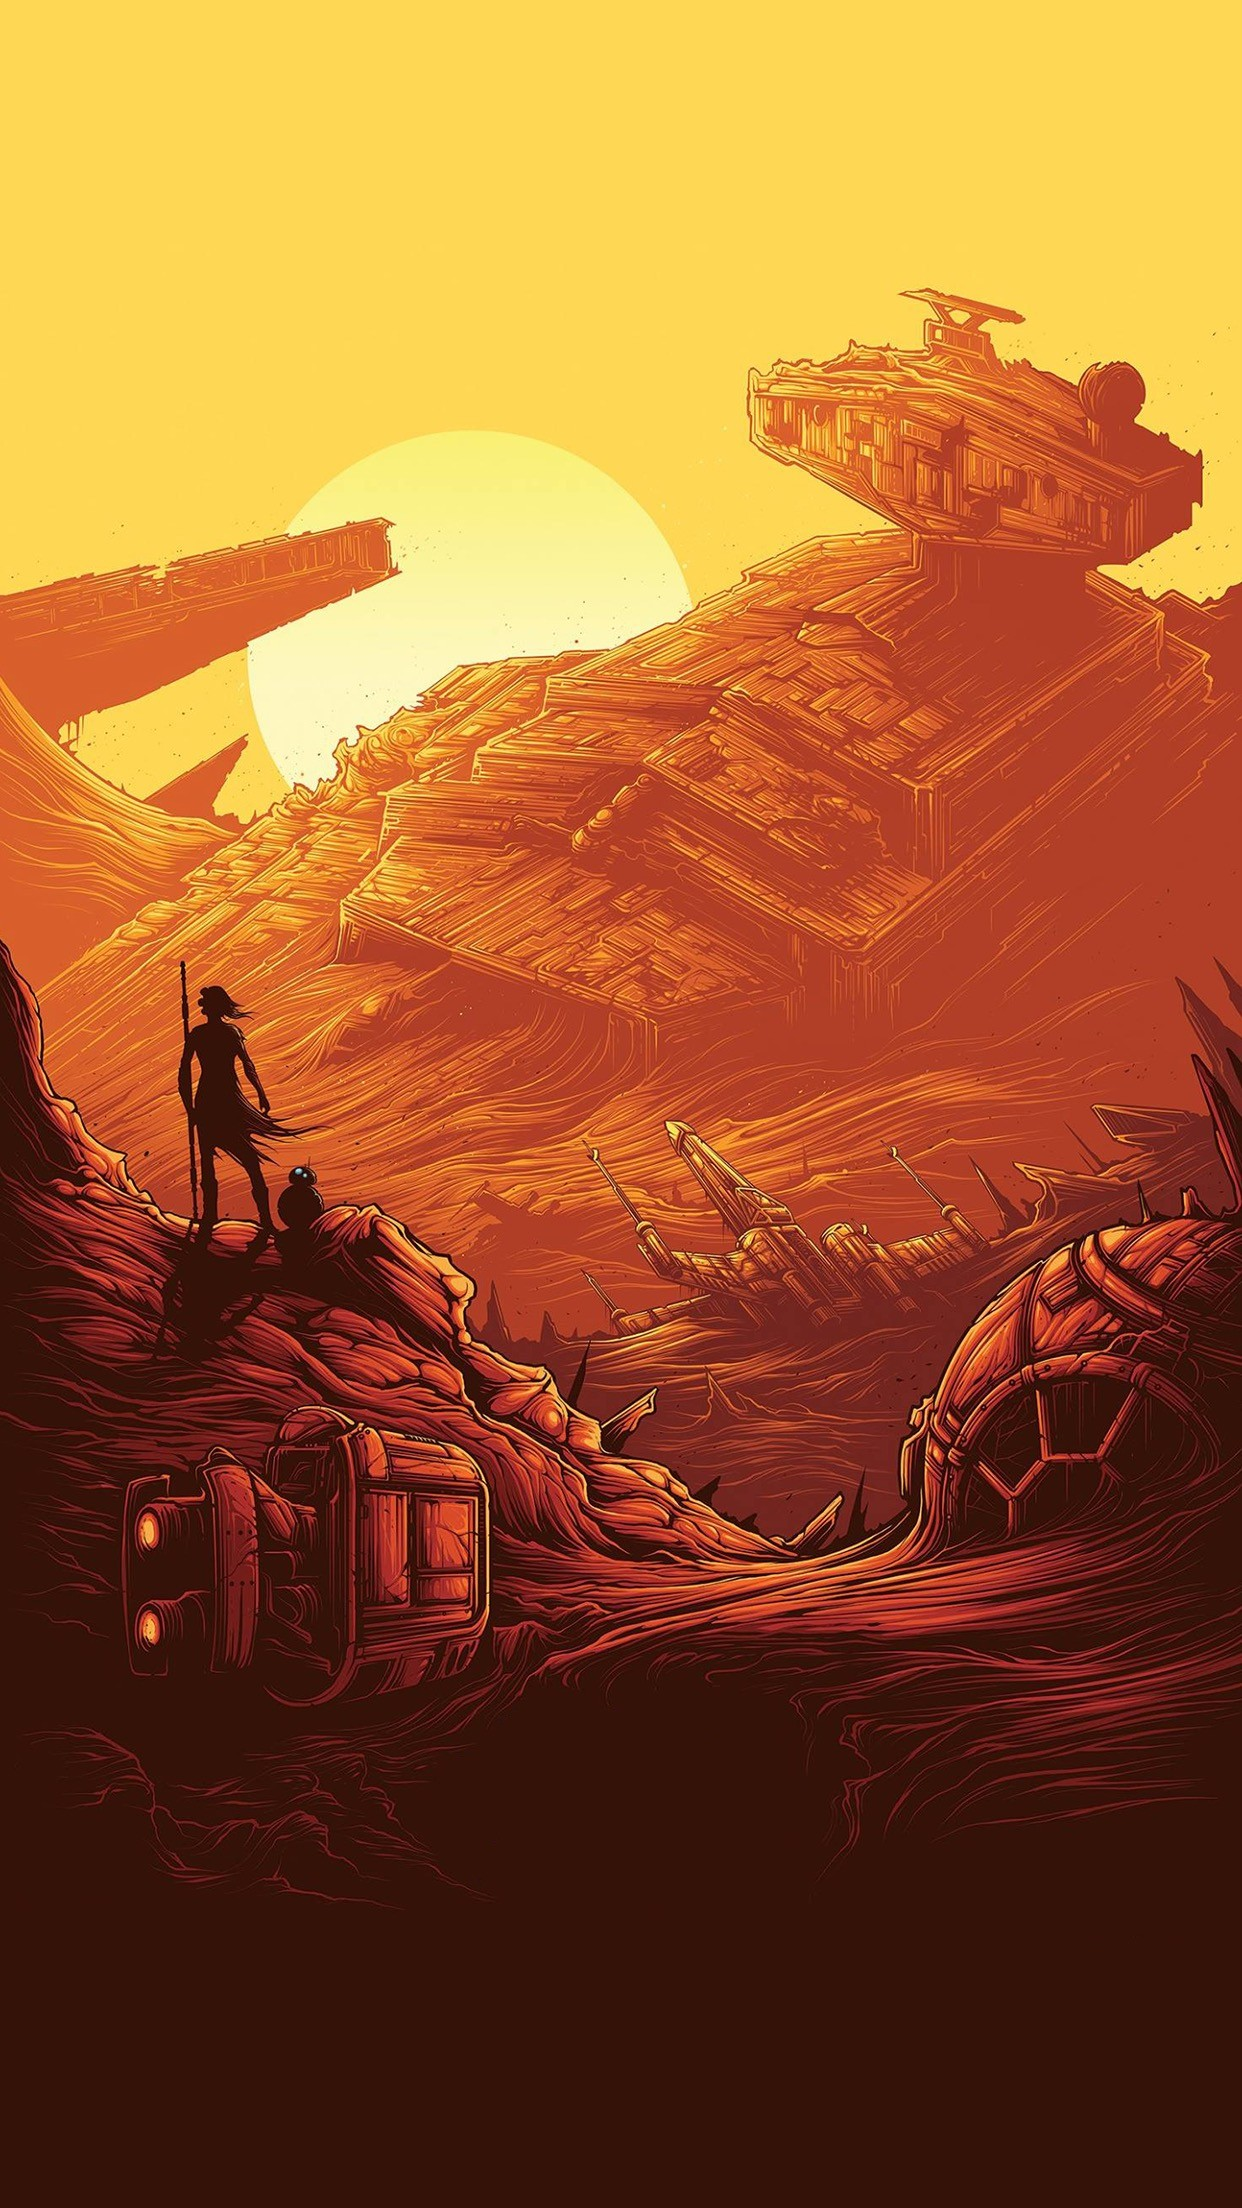 Star Wars Iphone Wallpaper Hd 84 Images